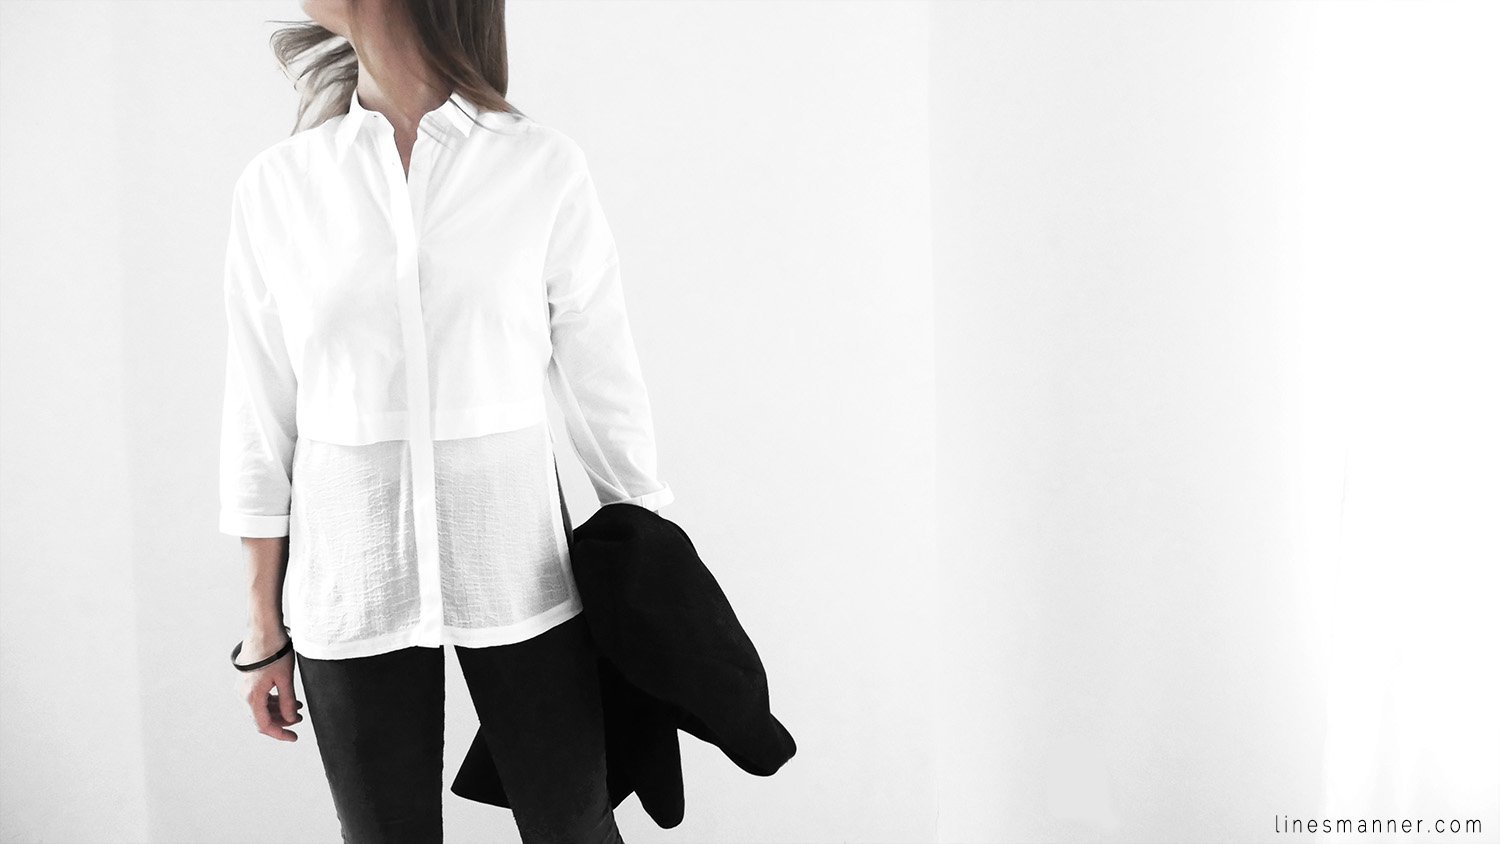 Lines-Manner-Remind-2015-Minimal-Essential-Outfit-Inspiration-Blog-Timeless-Year-Seasons-Details-Travel-Fashion-Versatile-Clean-Sleek-Quality-26